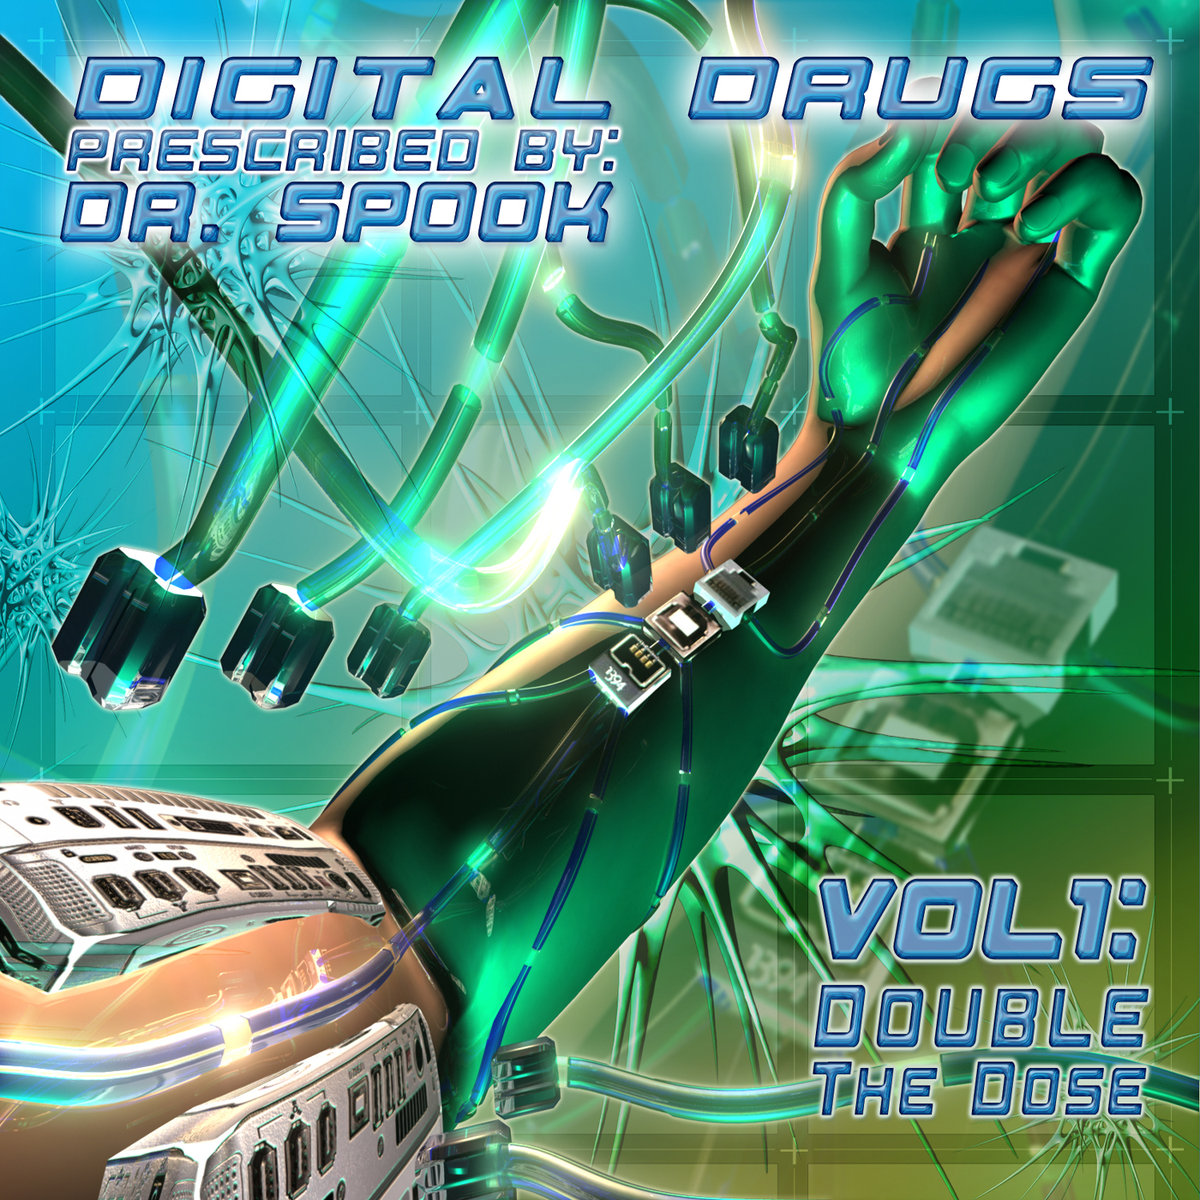 Onnomon - Dogs Of War @ 'Various Artists - Digital Drugs Vol.1: Double the Dose (Prescribed by Dr. Spook)' album (electronic, goa)